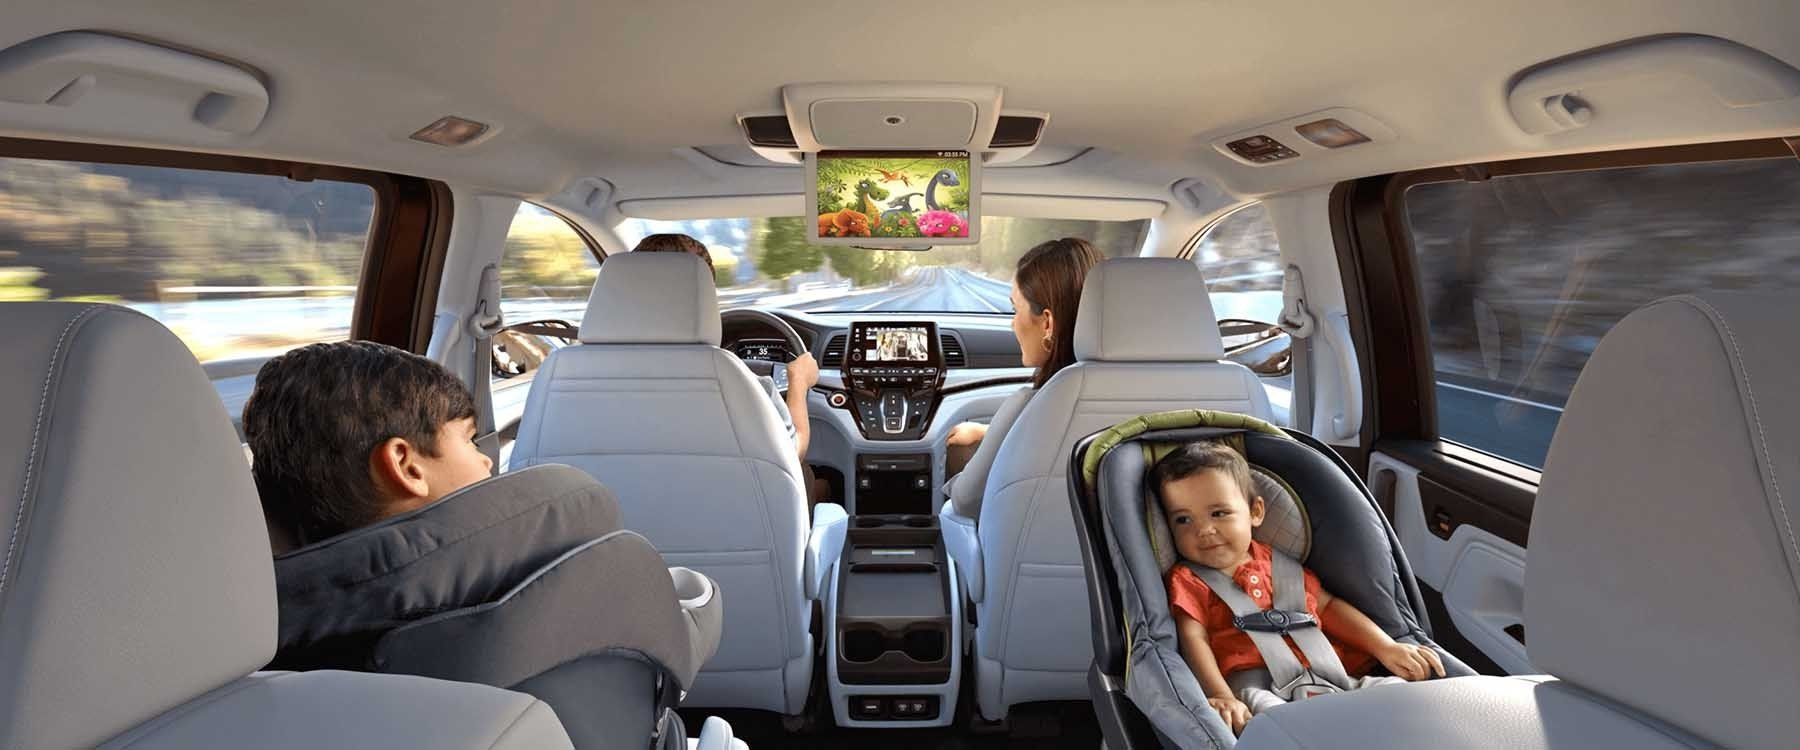 2018 Honda Odyssey Rear Seat View of Entertainment